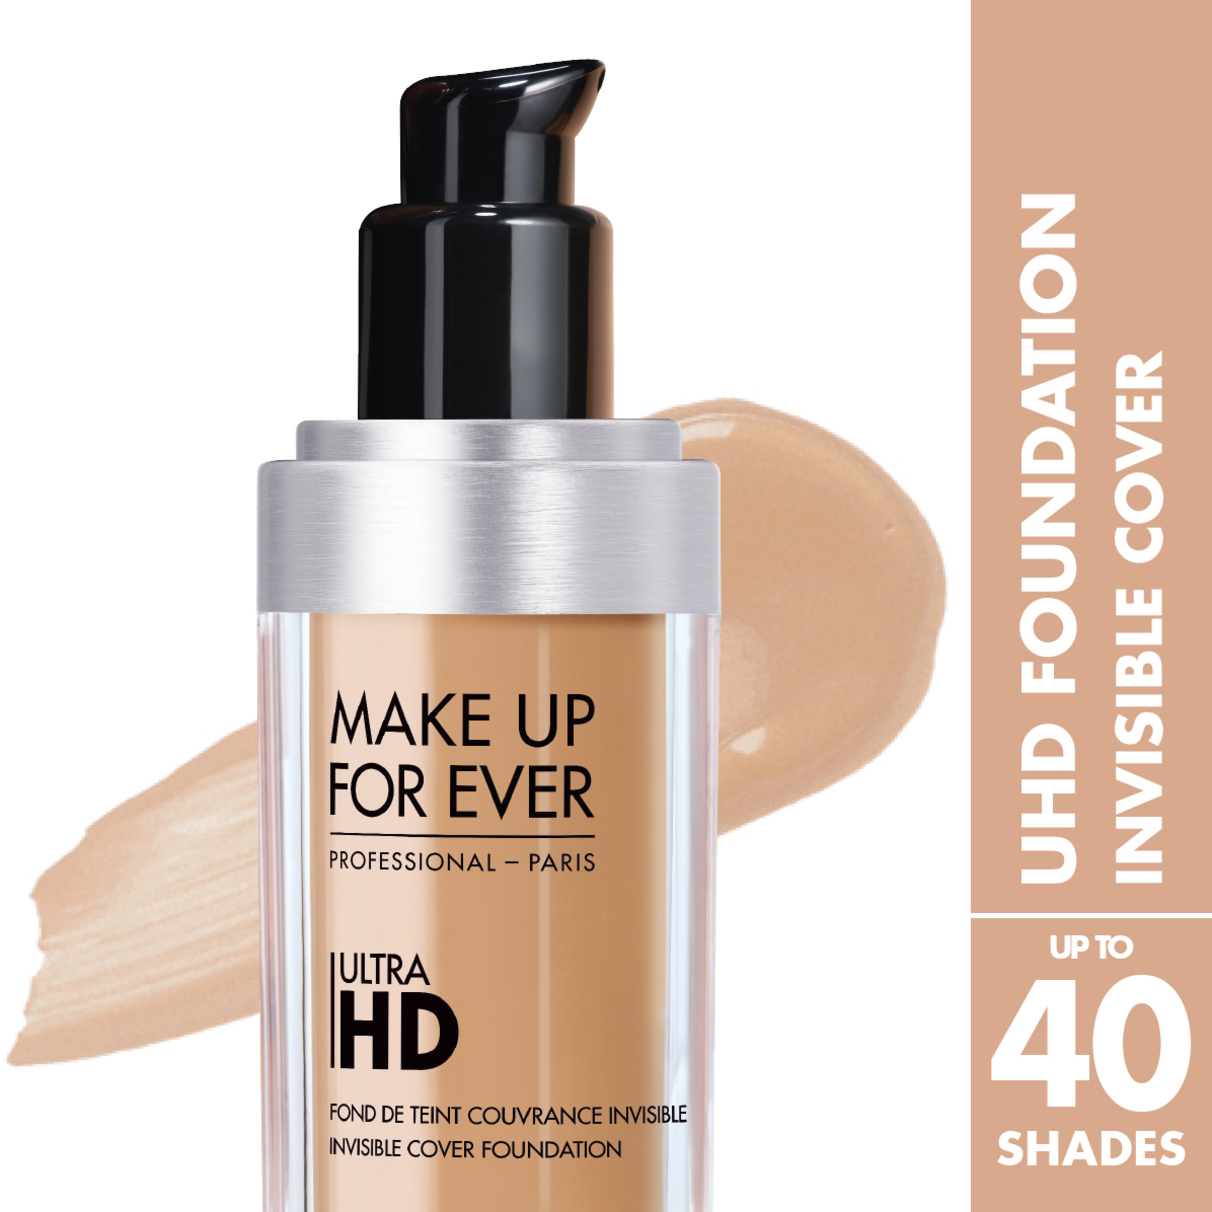 how to apply make up for ever hd foundation